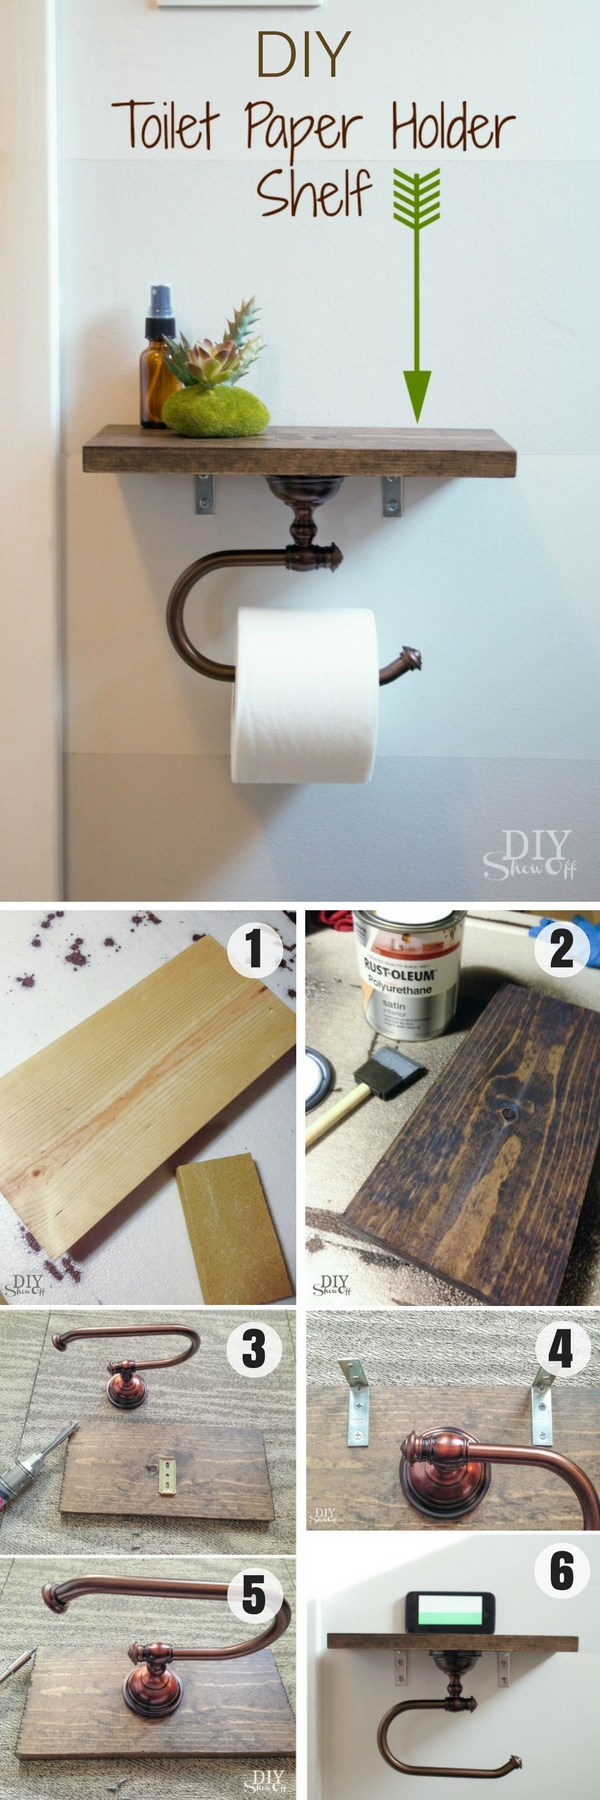 #DIY Toilet Paper Holder Shelf for rustic bathroom decor #bathroomdecor